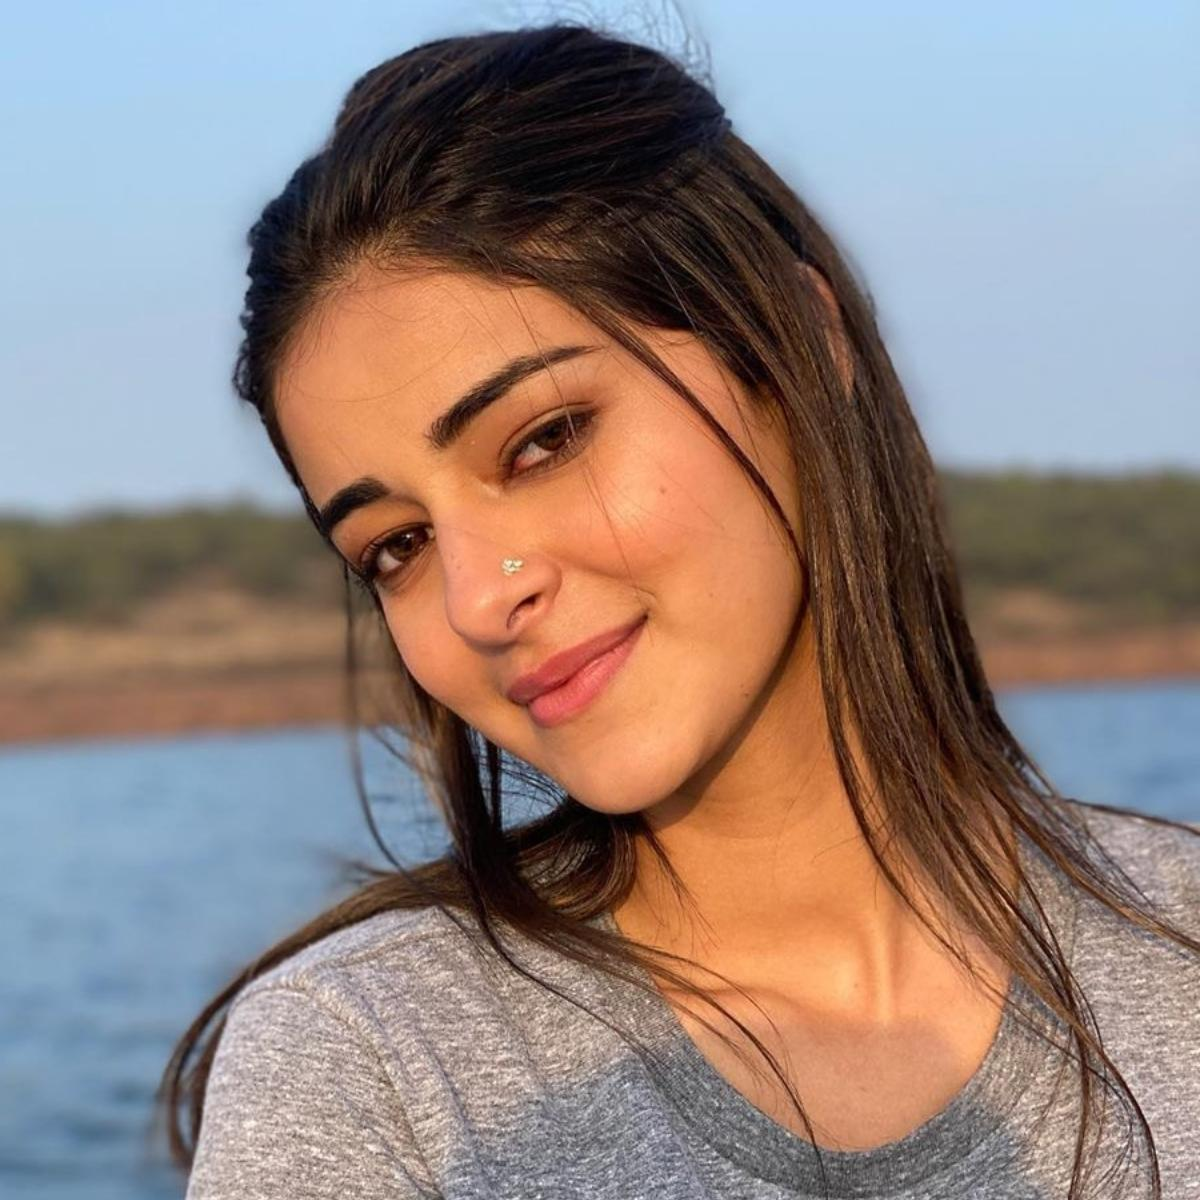 Gallery Ananya Panday to Nora Fatehi 10 Bollywood actresses who aced the ... is free HD wallpaper.